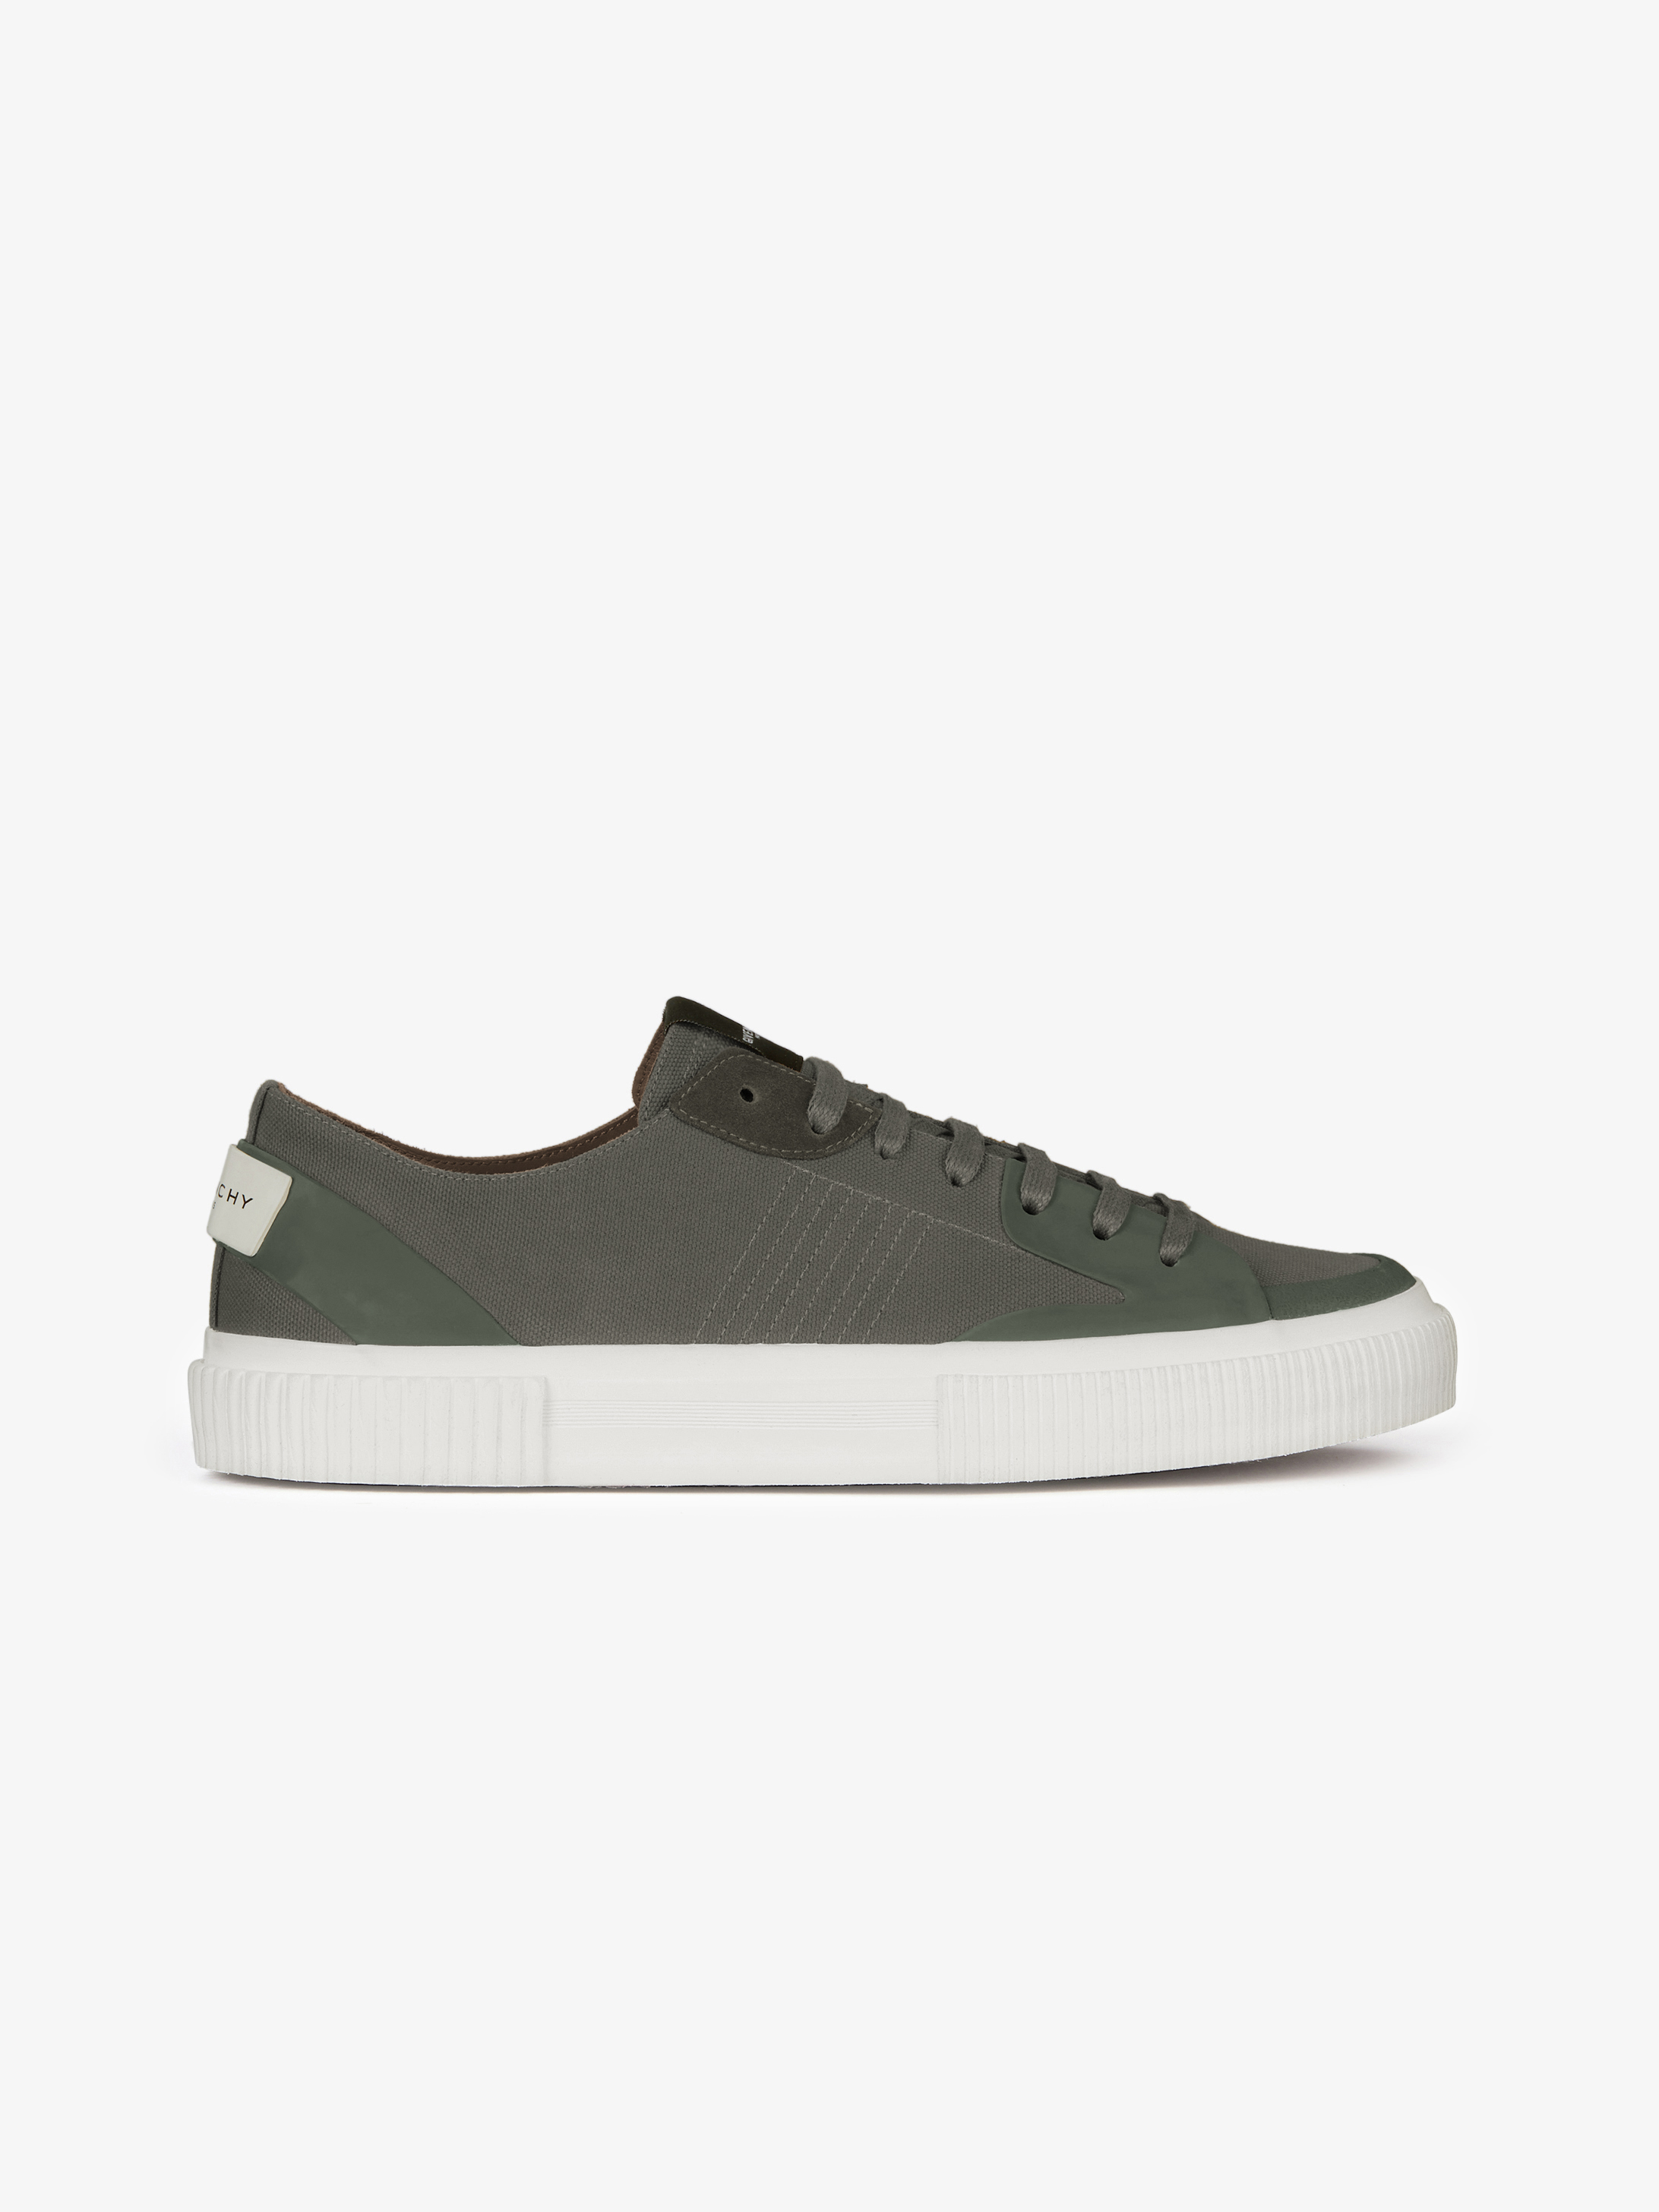 Low sneakers in canvas